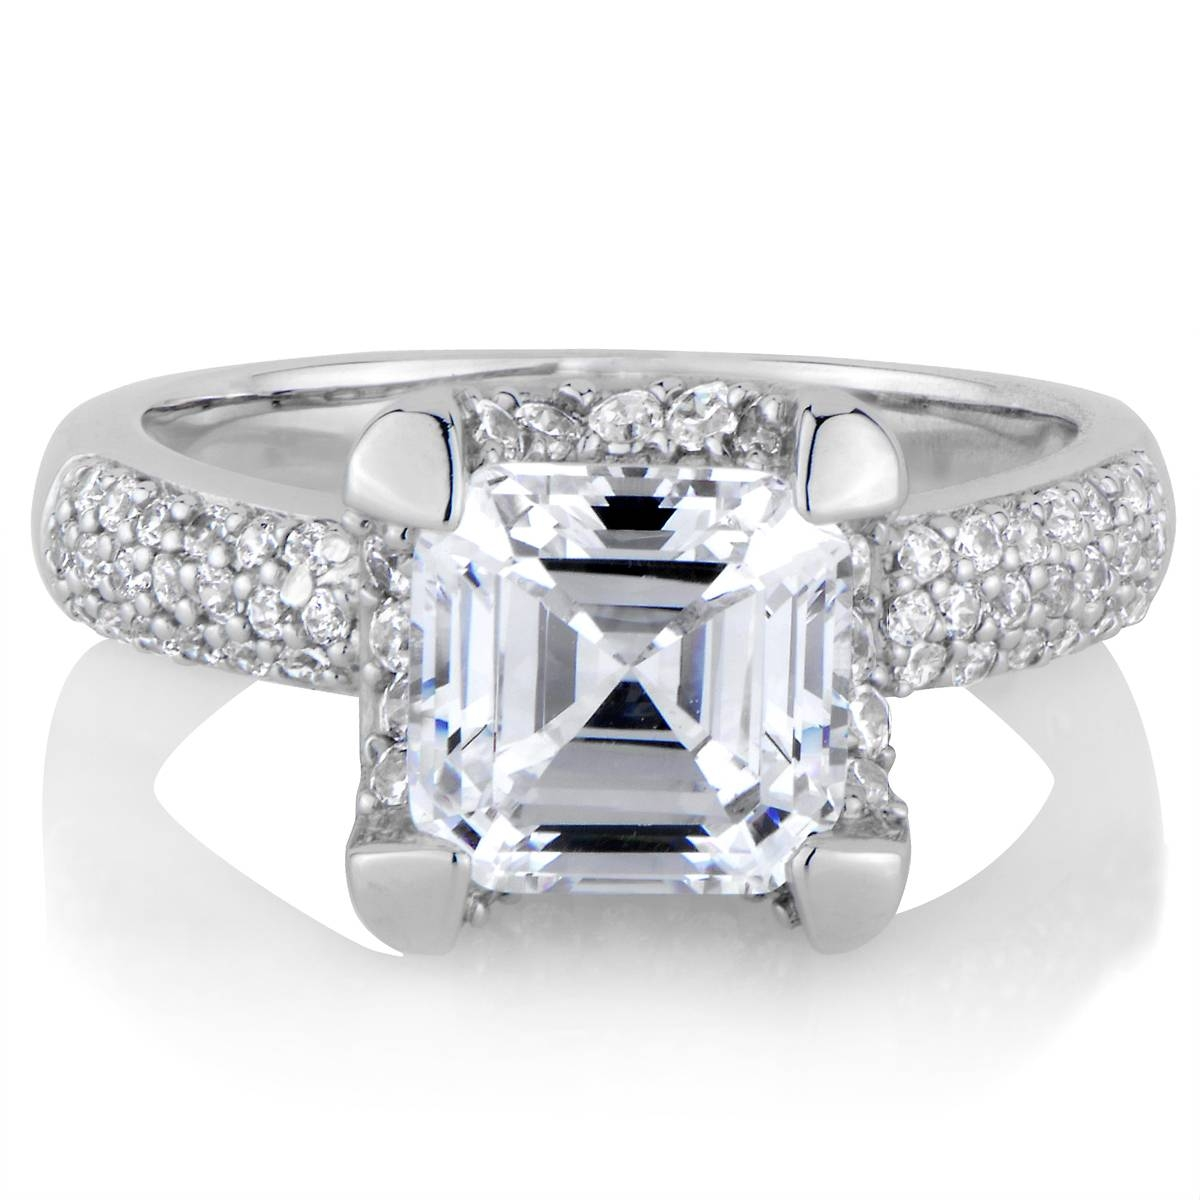 Talitha's Imitation Engagement Ring: Asscher Cut Cz Throughout Asscher Diamond Engagement Rings (Gallery 7 of 15)